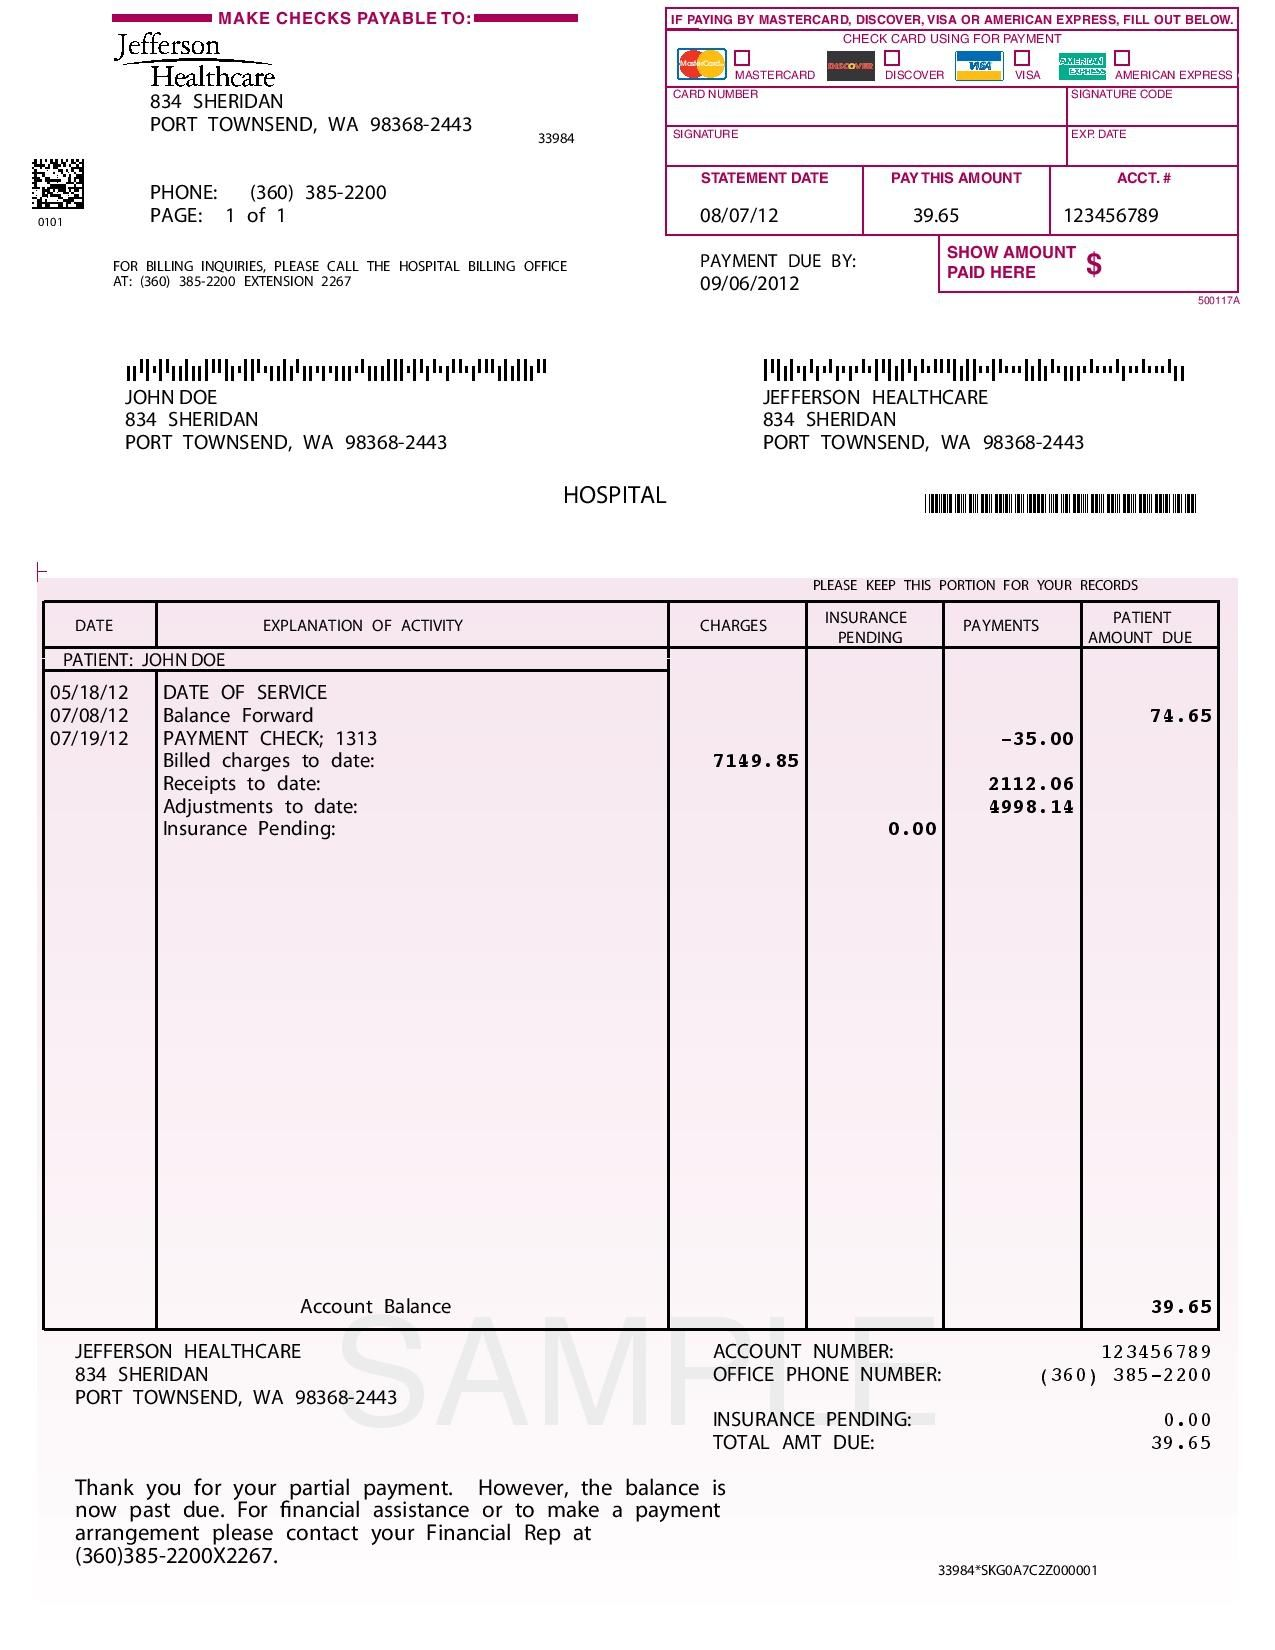 best images of sample of invoice for payment sample invoice 10 best images of sample of invoice for payment sample invoice payment terms on an invoice